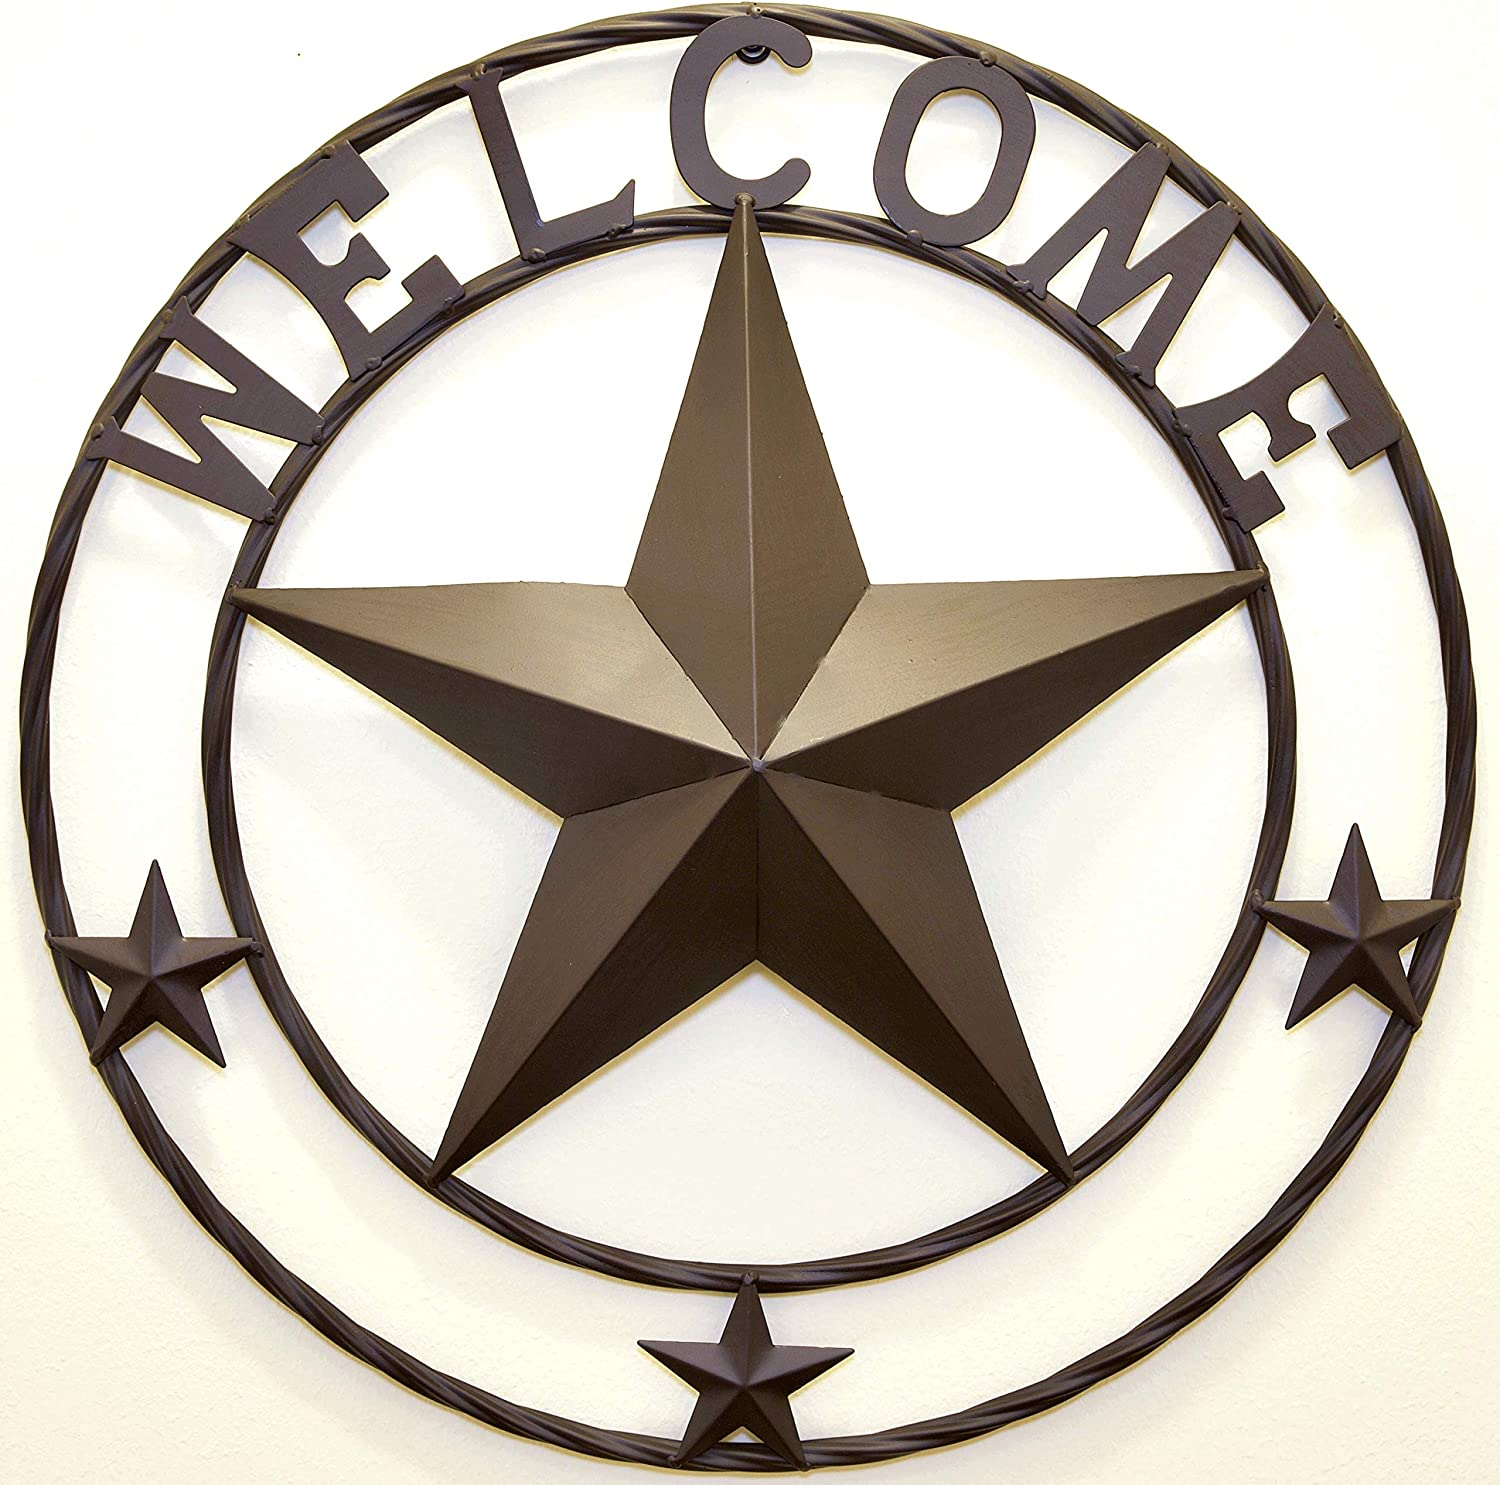 "BestGiftEver Metal 24"" Welcome with Stars Circle Wall Hanging Decoration - Metal Star Outdoor Decor"